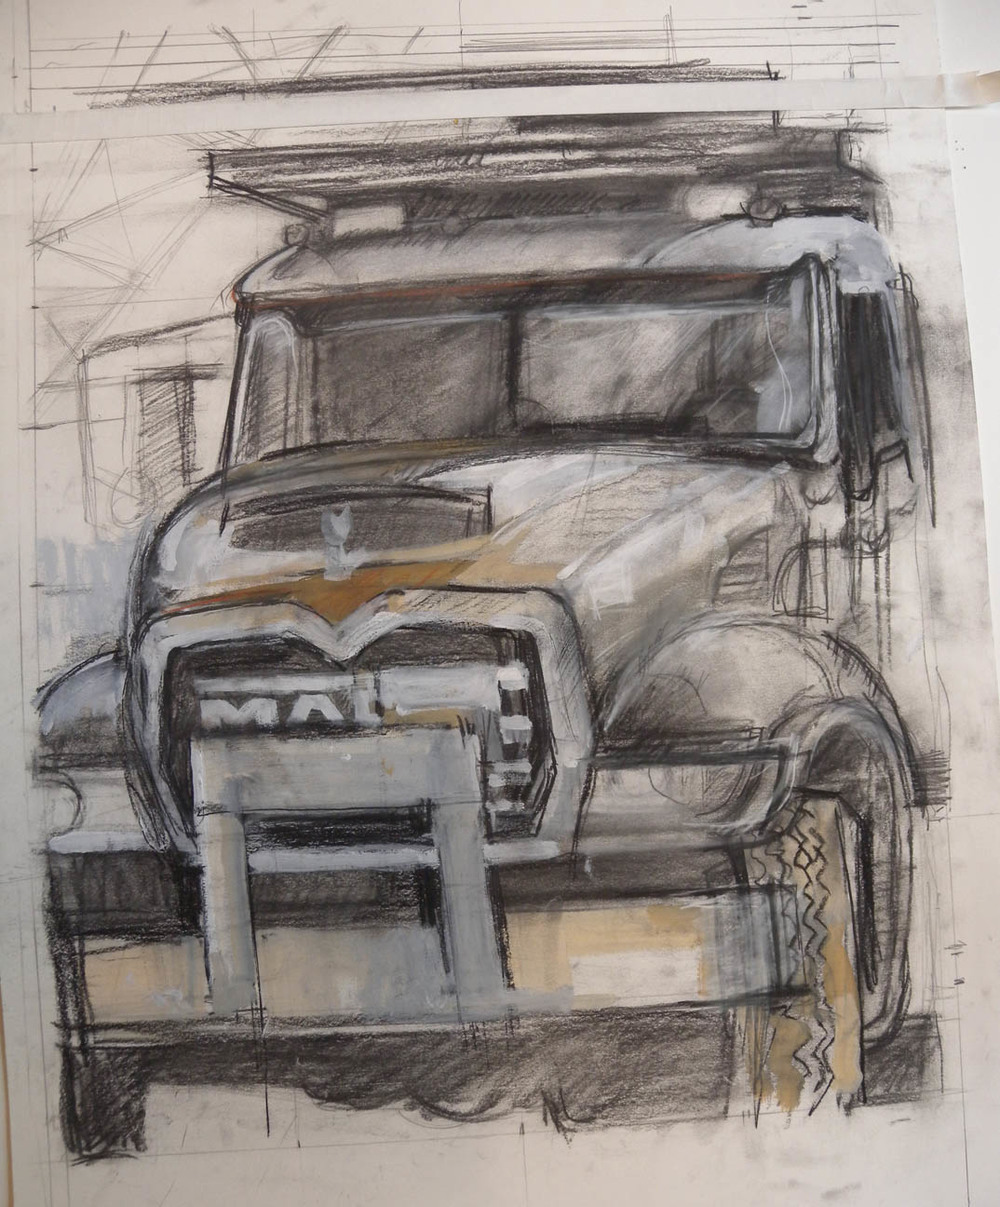 """White Truck (unfinished), charcoal & acrylic on paper, 23 1/2"""" x 20 1/2"""" On Exhibit, Addison/Ripley Fine Art, DC"""